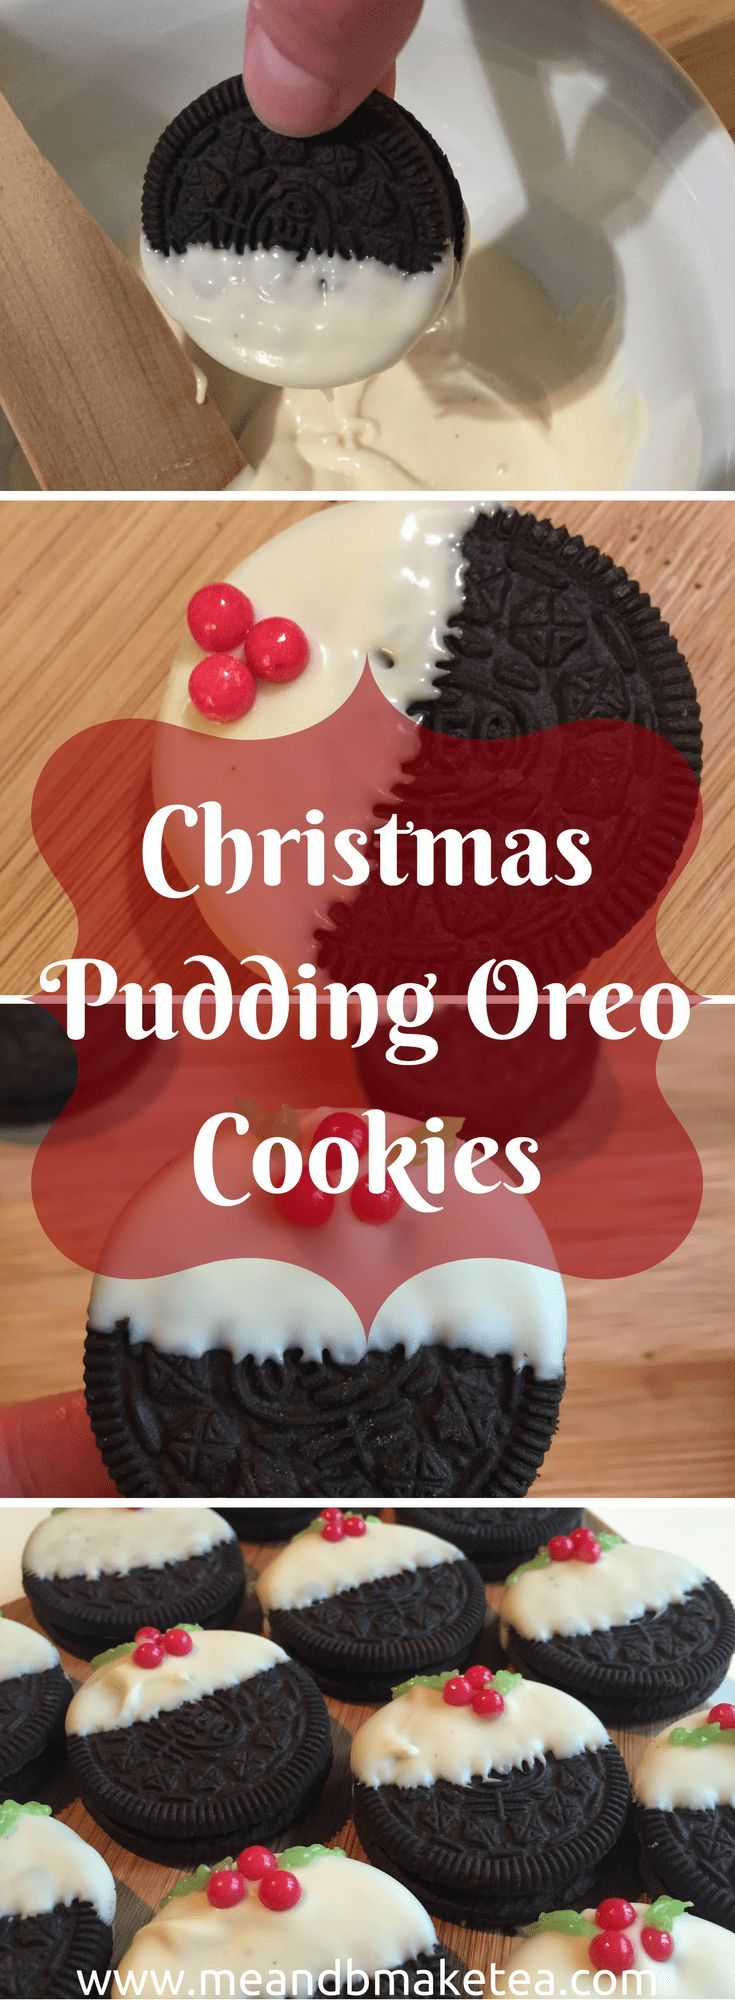 Theseten minute no bake #Christmas pudding#Oreo cookiesare so easy to make and requireminimal preparationand effort.    They would make the perfect addition to any party. And for something that takes zero effort, they look pretty impressive!